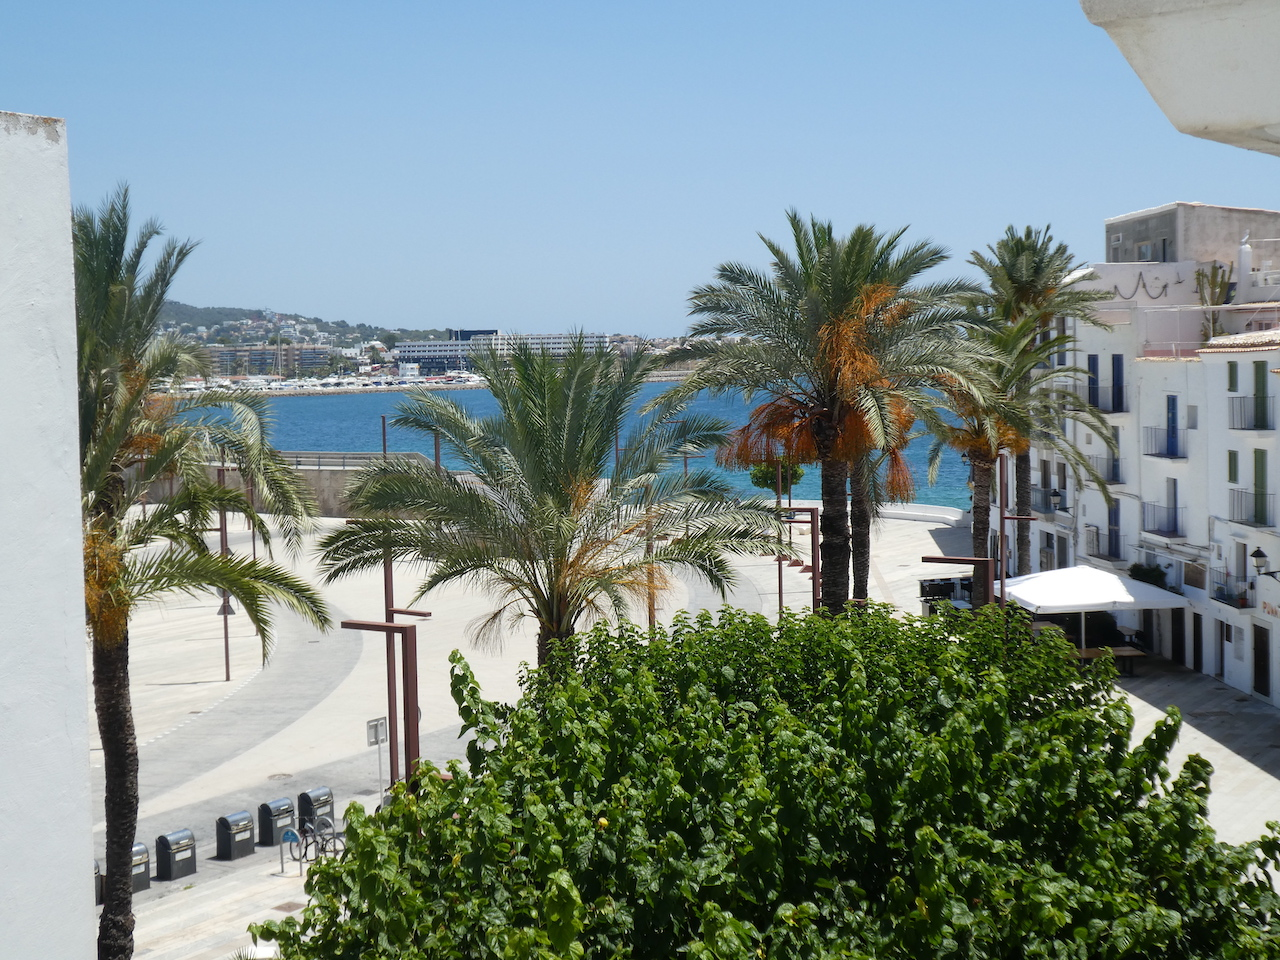 1013 - Designer apartment in Ibiza's old town - My Blog